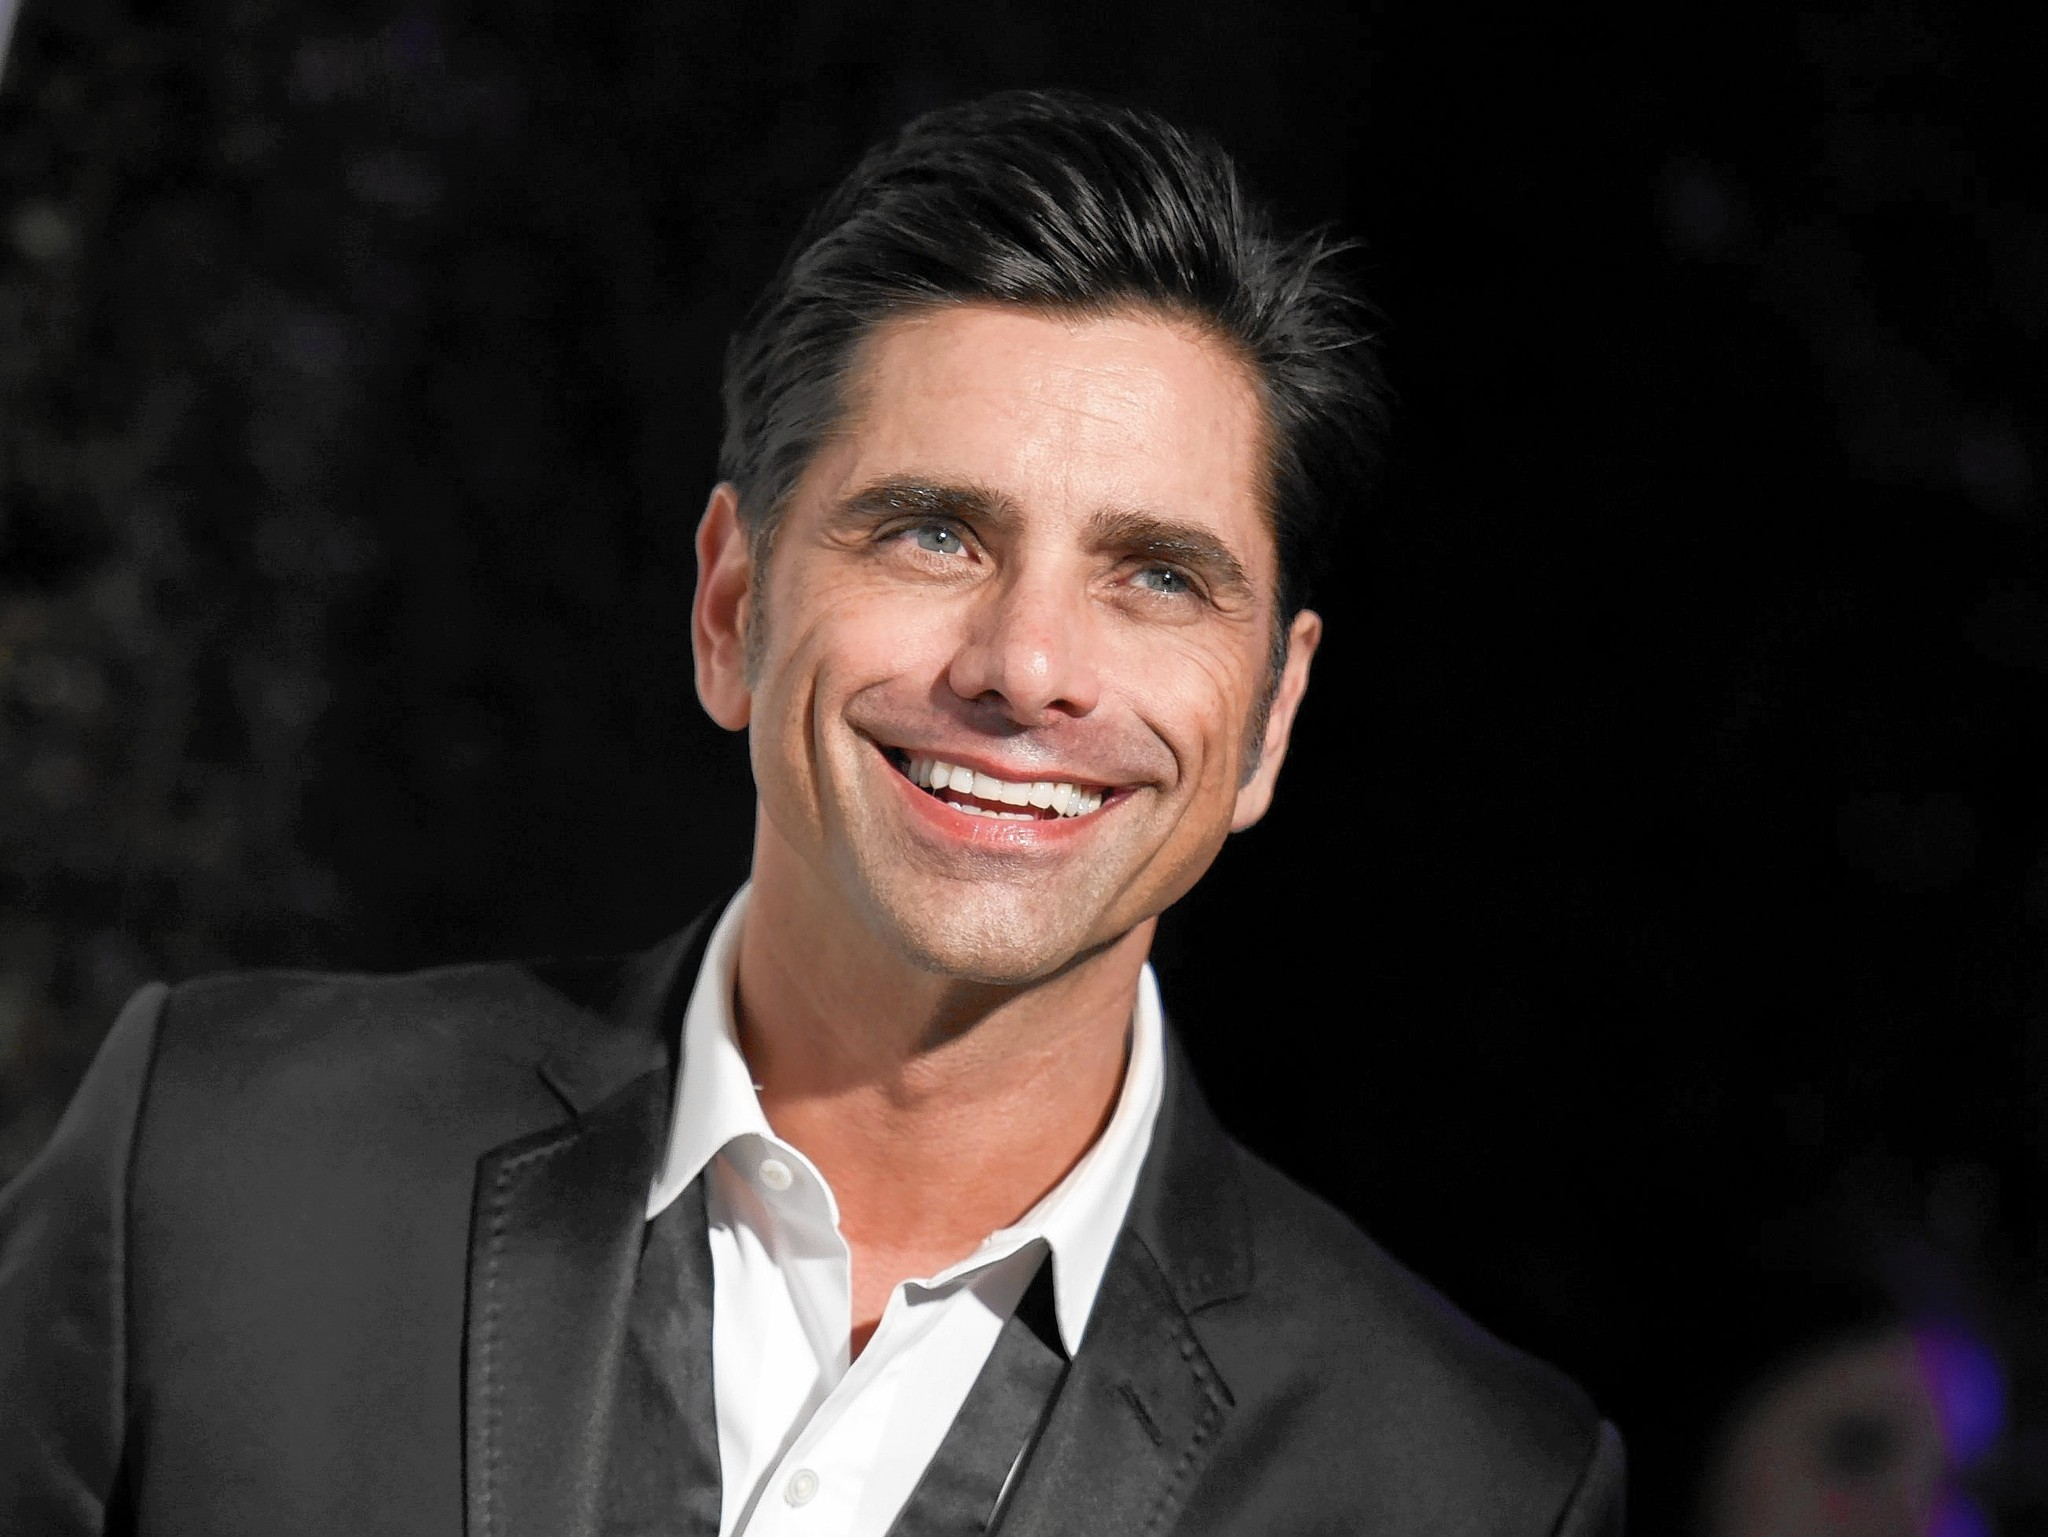 john stamos wikijohn stamos loving you, john stamos young, john stamos meme, john stamos wiki, john stamos instagram, john stamos and lori loughlin, john stamos who dated who, john stamos clone high, john stamos home, john stamos glen powell, john stamos ellen, john stamos glee, john stamos hot patootie, john stamos wikipedia, john stamos everywhere you look, john stamos loving you lyrics, john stamos sitcom, john stamos tumblr, john stamos filmography, john stamos south park